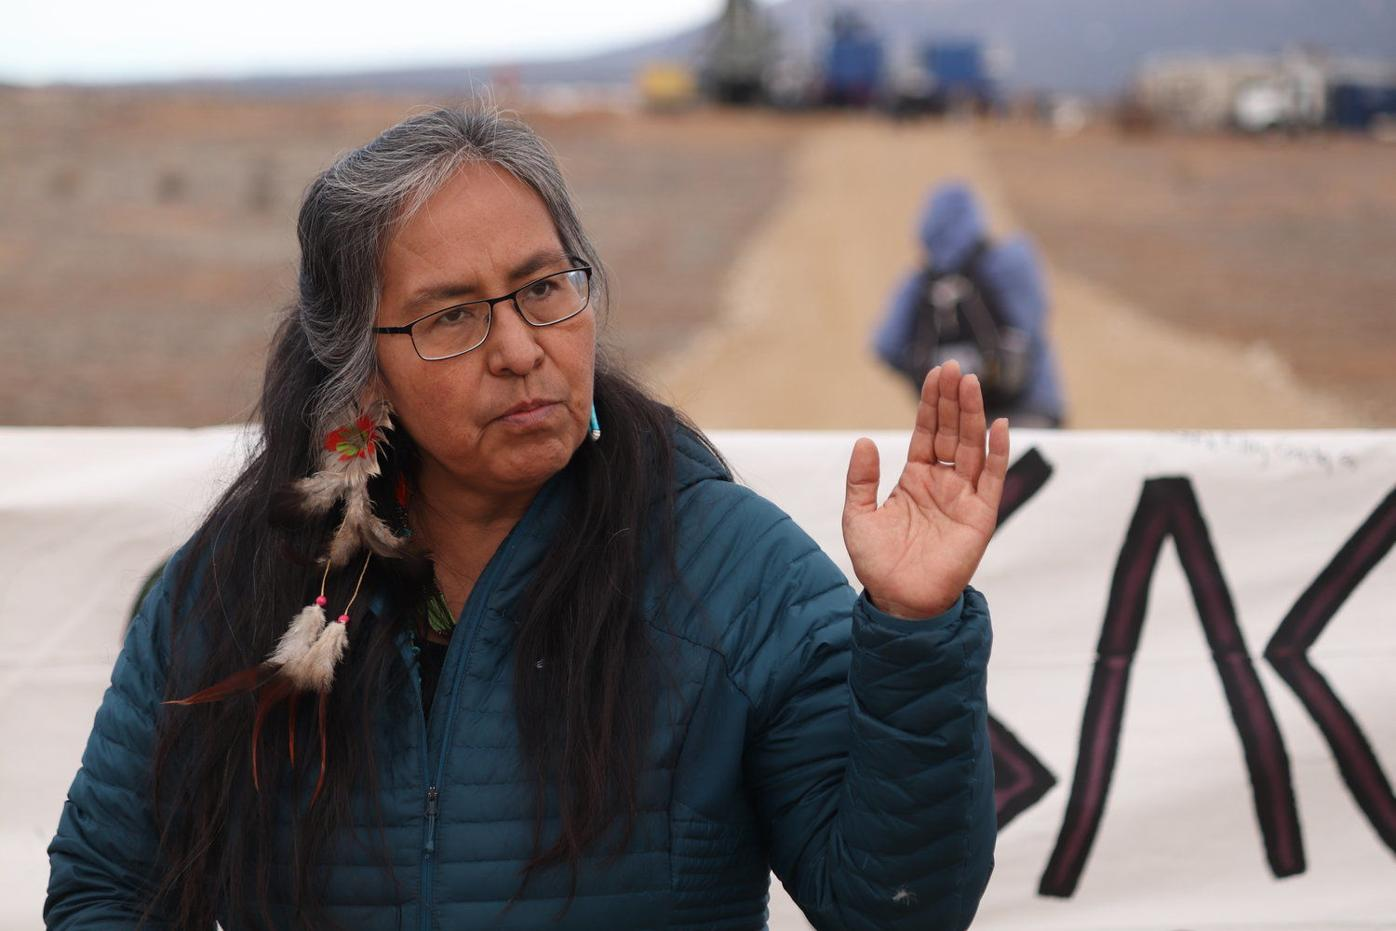 Taking action on Abeyta: Water protectors seek to slow settlement implementation